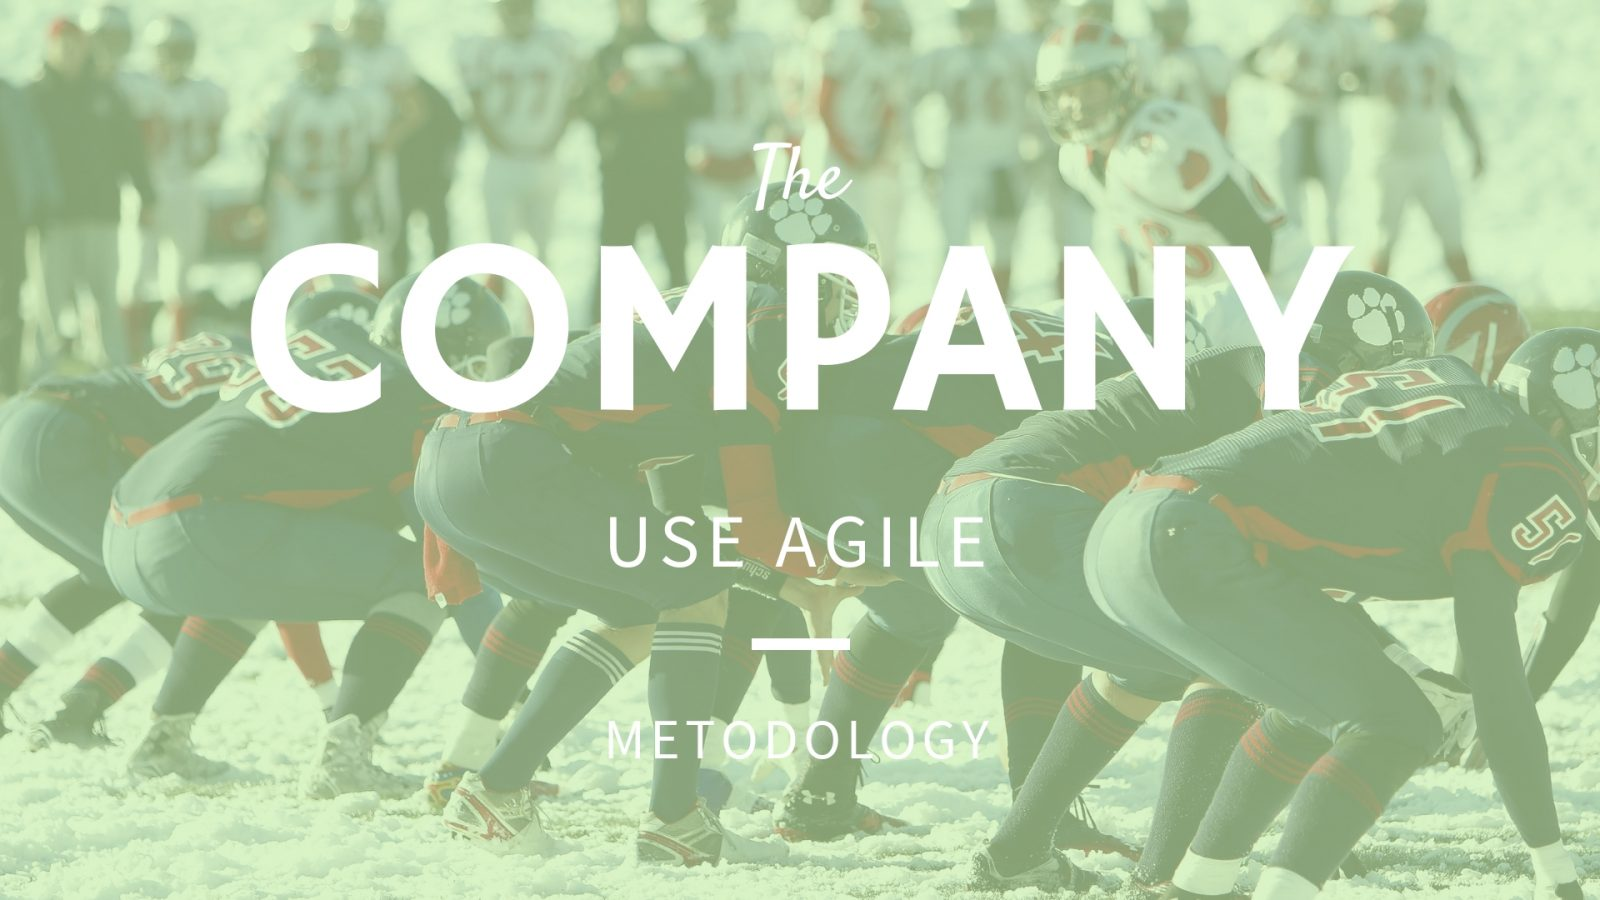 Top IT Companies that use agile methodology. How to find Best?